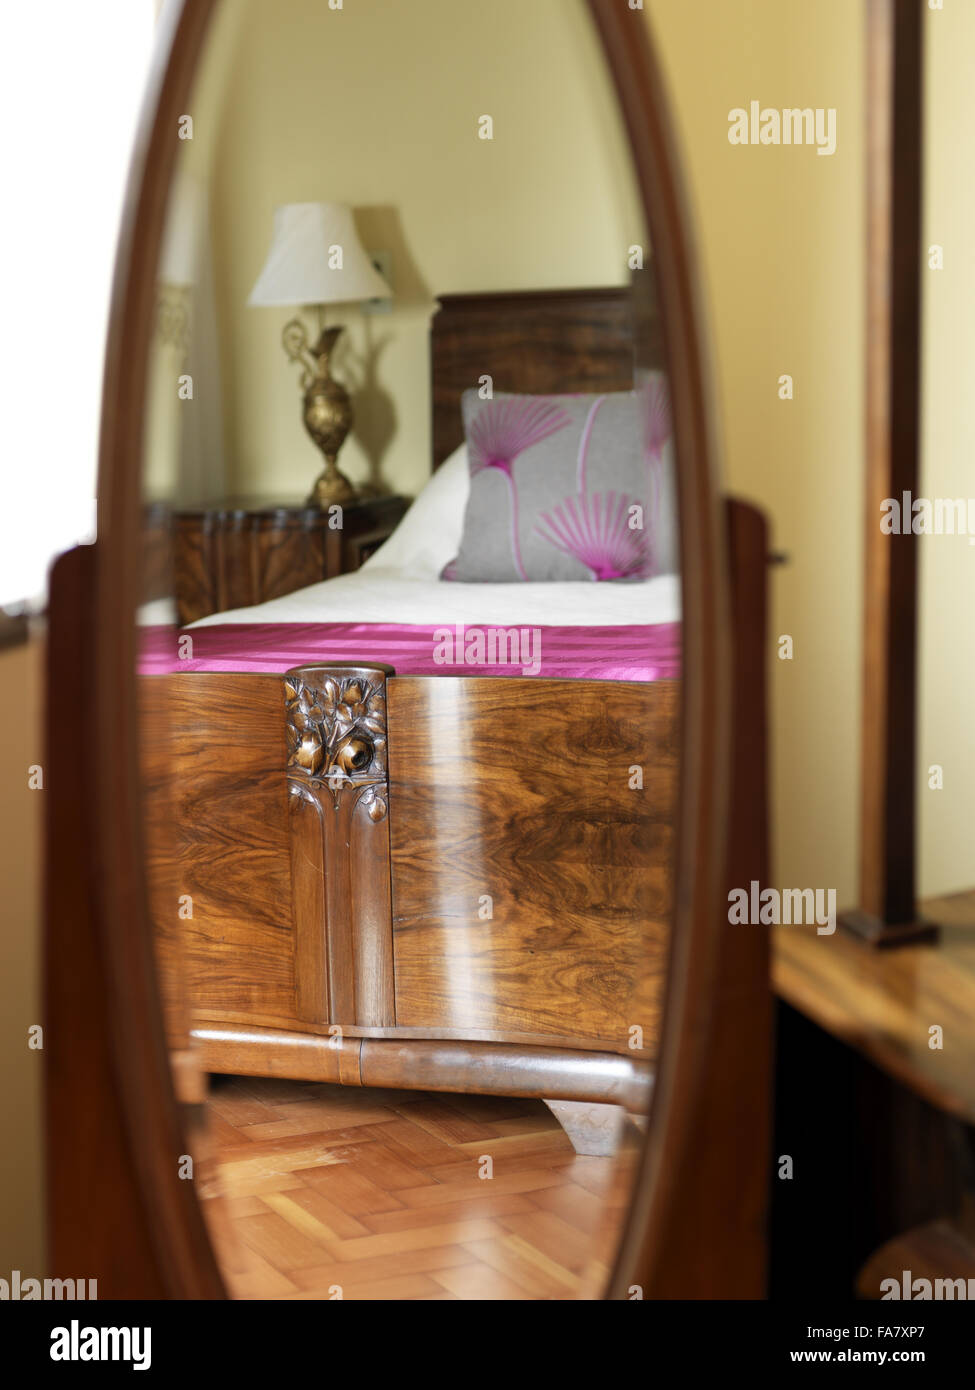 Detail of a bed and lamp in Geoffrey Bushby's bedroom, seen reflected in an oval mirror, Portland House, Dorset. - Stock Image